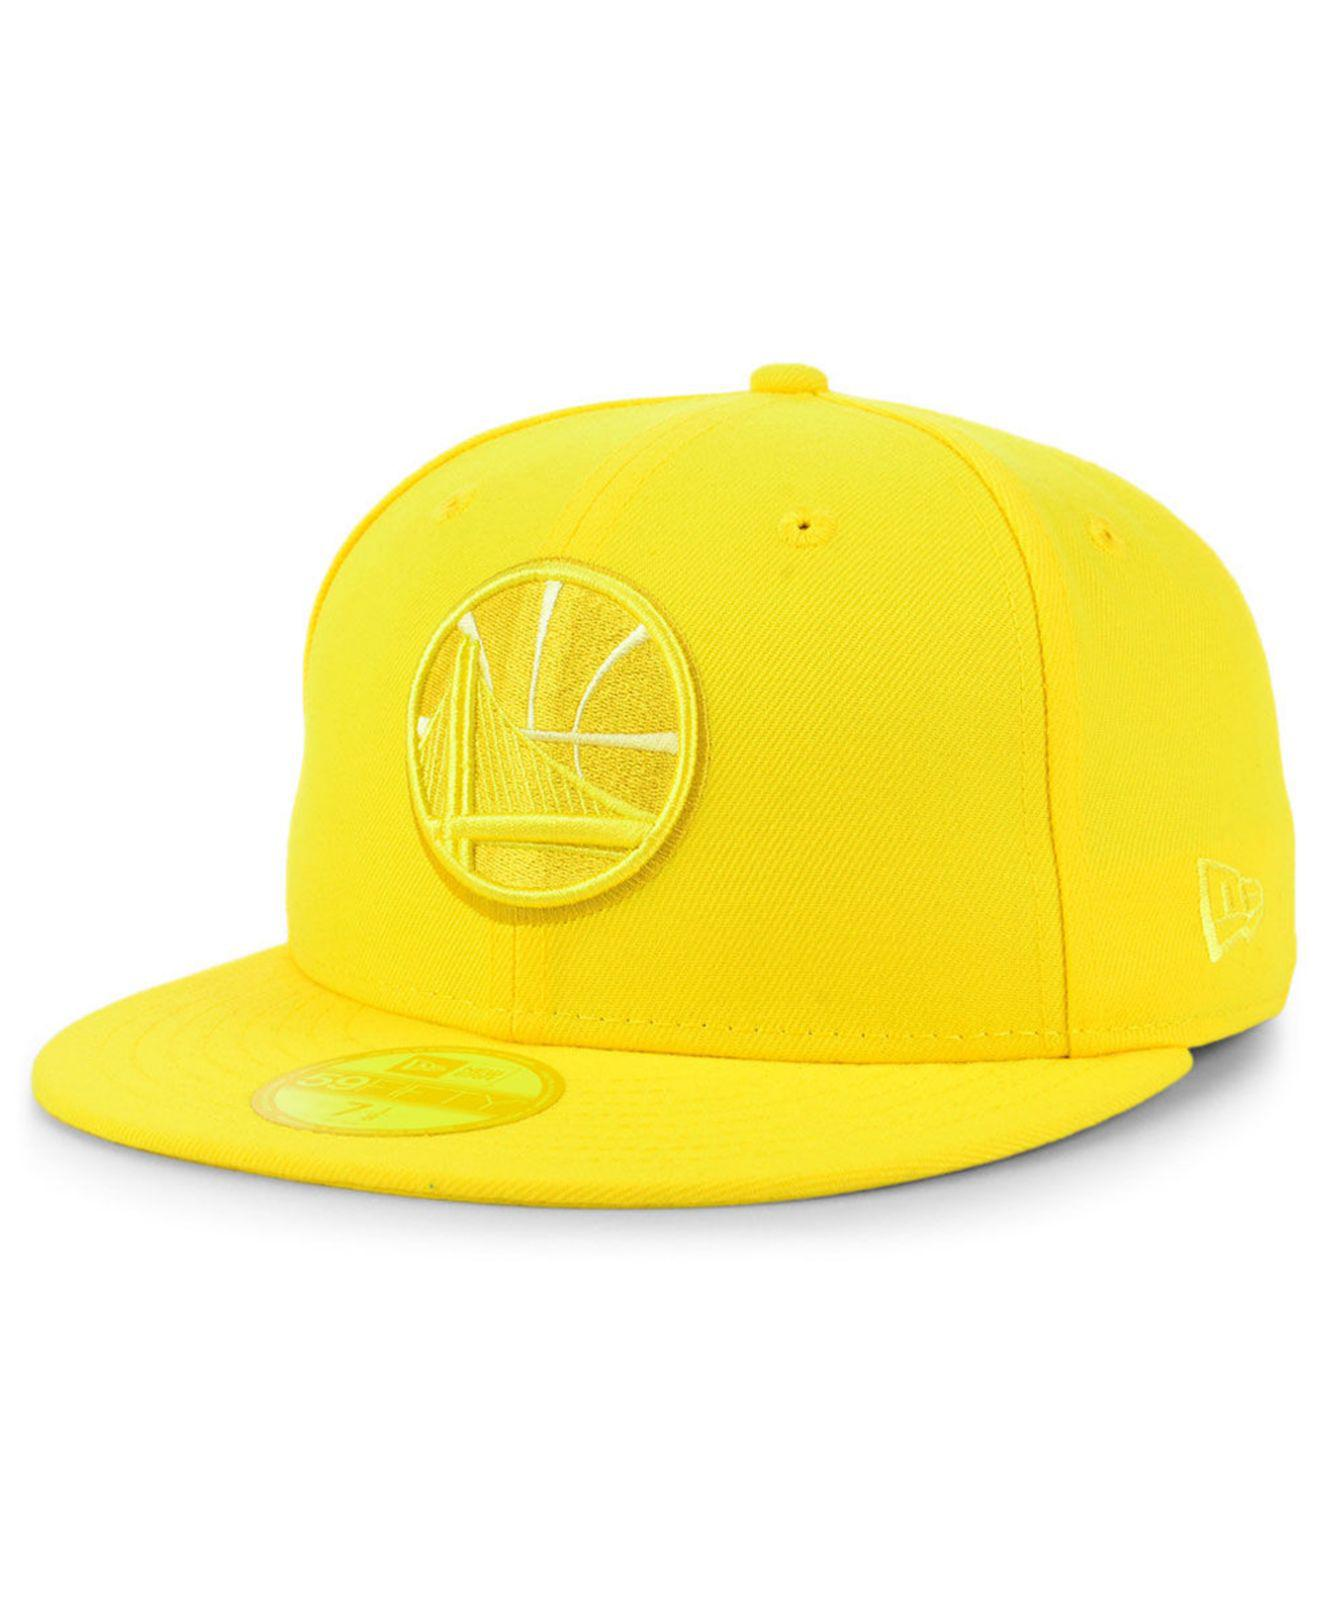 save off b9e87 1e781 KTZ - Yellow Golden State Warriors Color Prism Pack 59fifty Fitted Cap for  Men - Lyst. View fullscreen